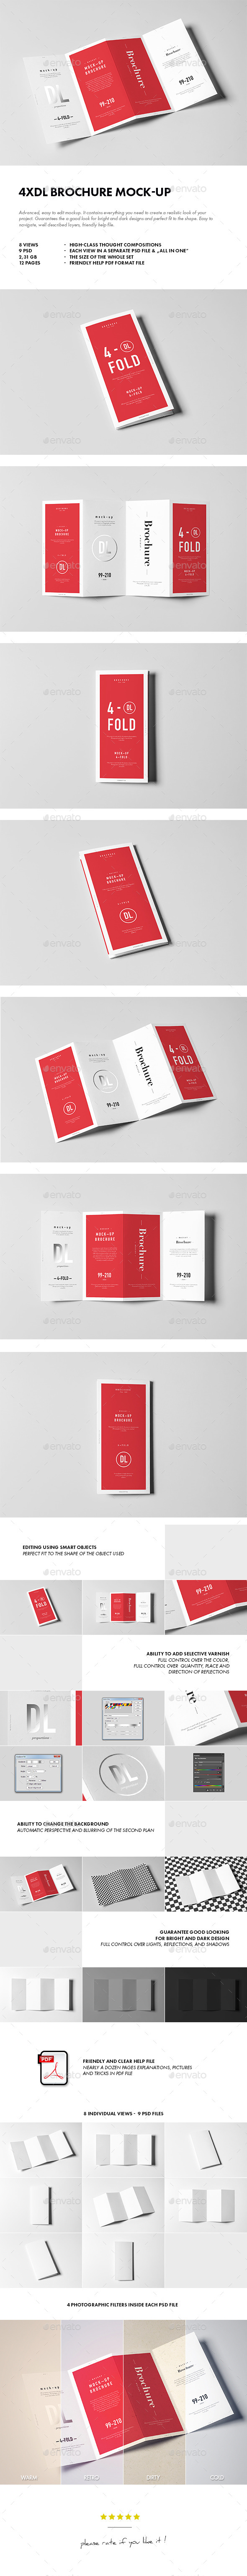 GraphicRiver 4xDL Brochure Mock-up 11864582